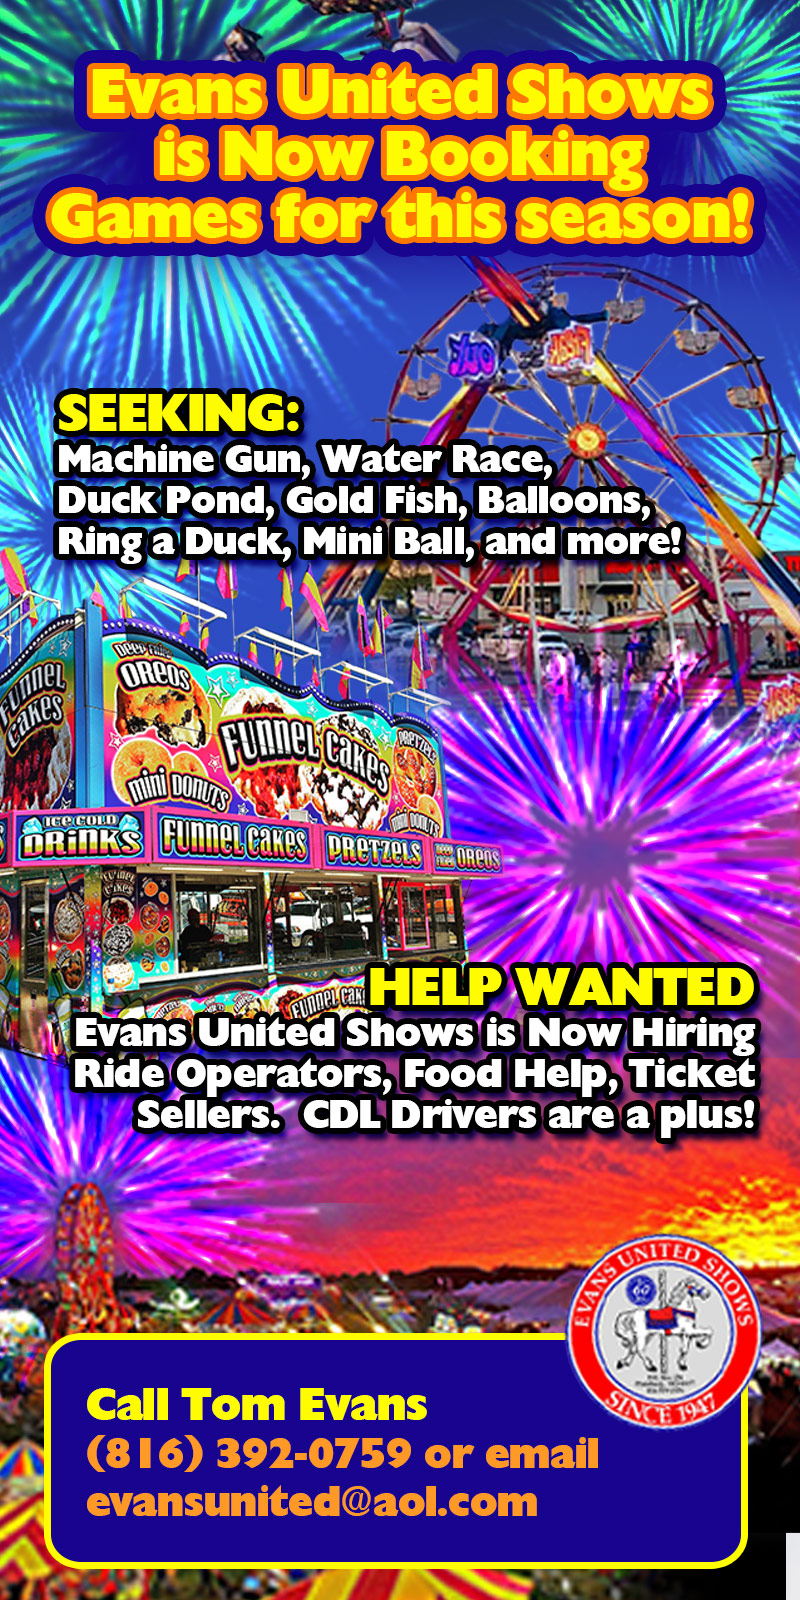 Evans United Shows is now booking games